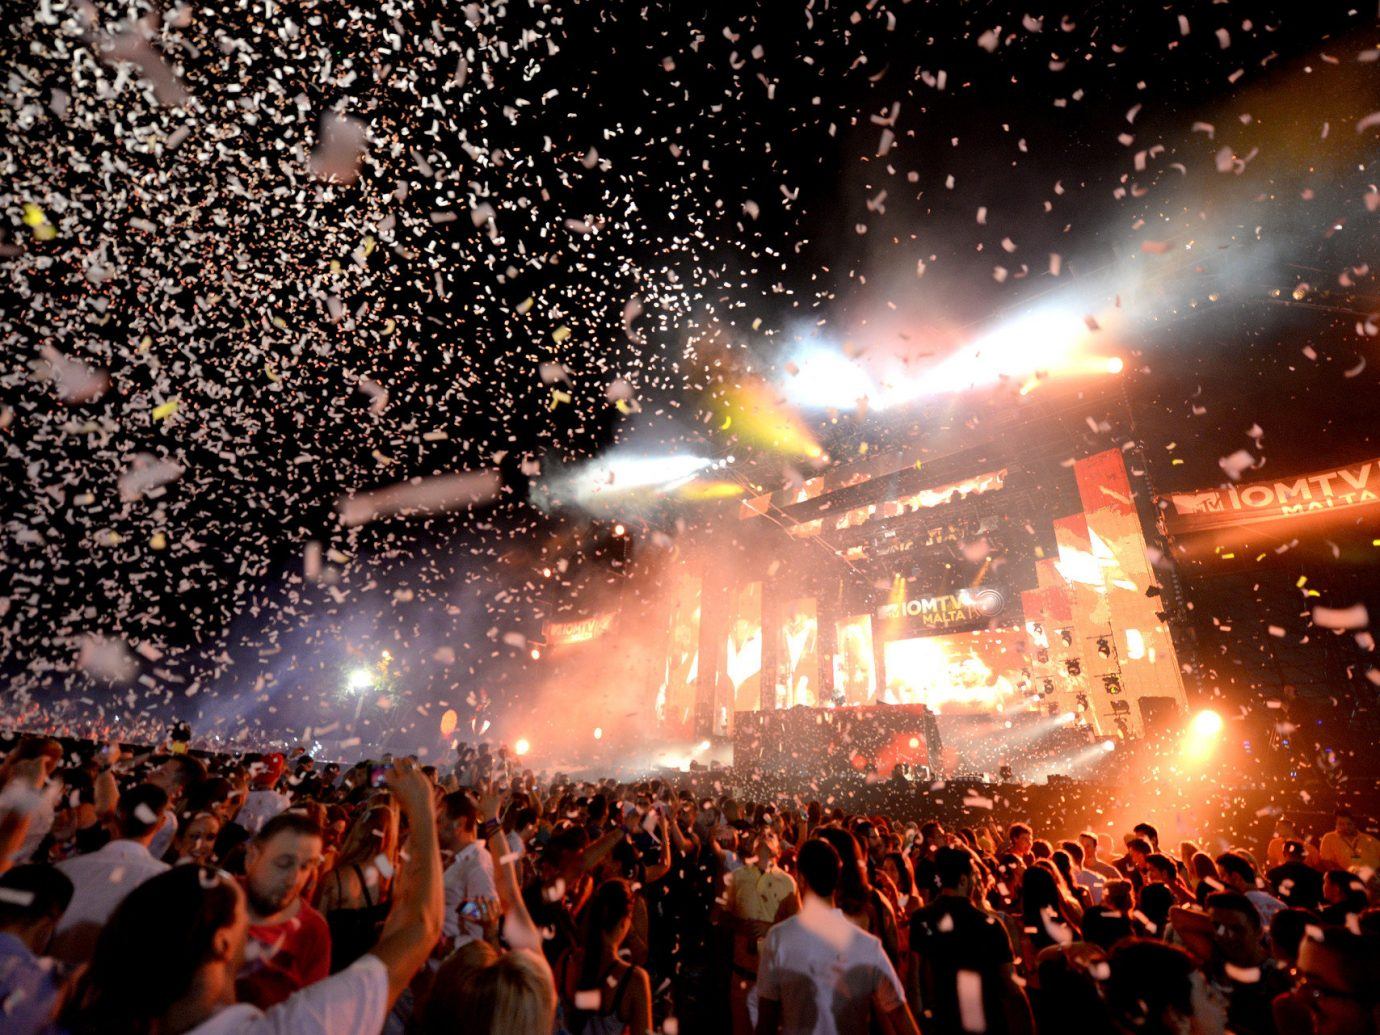 Trip Ideas person outdoor crowd rock concert performance concert light people audience stage event night festival bright